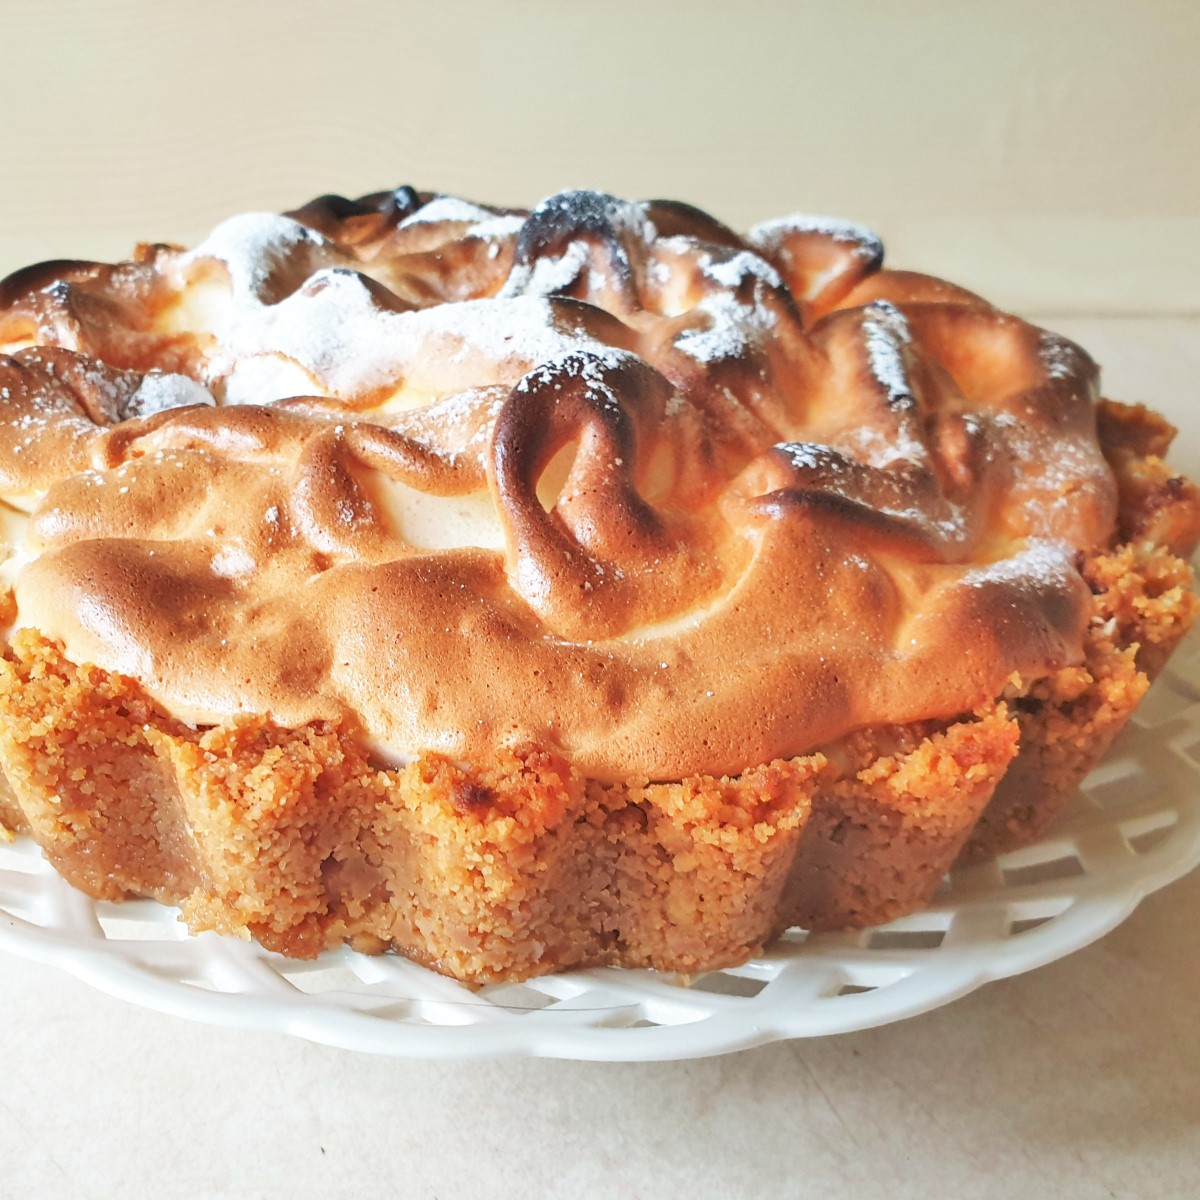 Side on shot of a meringue-topped key lime pie.